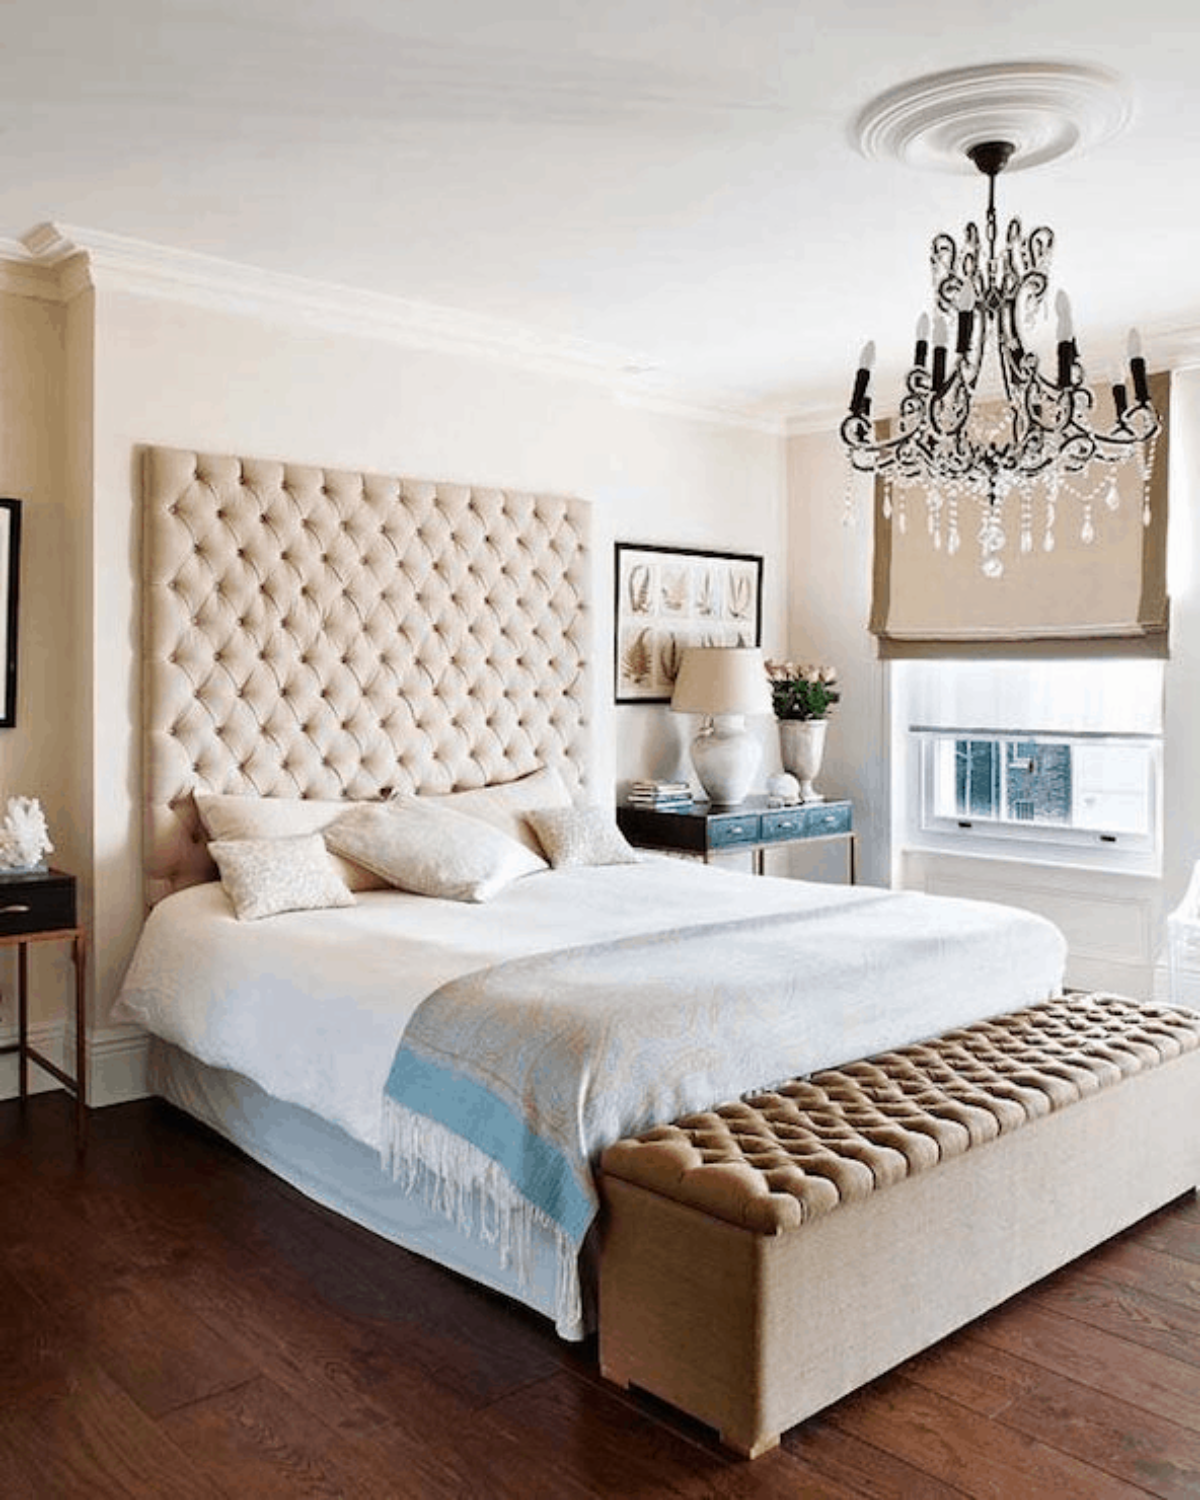 How Do Headboards Work Types Of Headboards Installation And Use